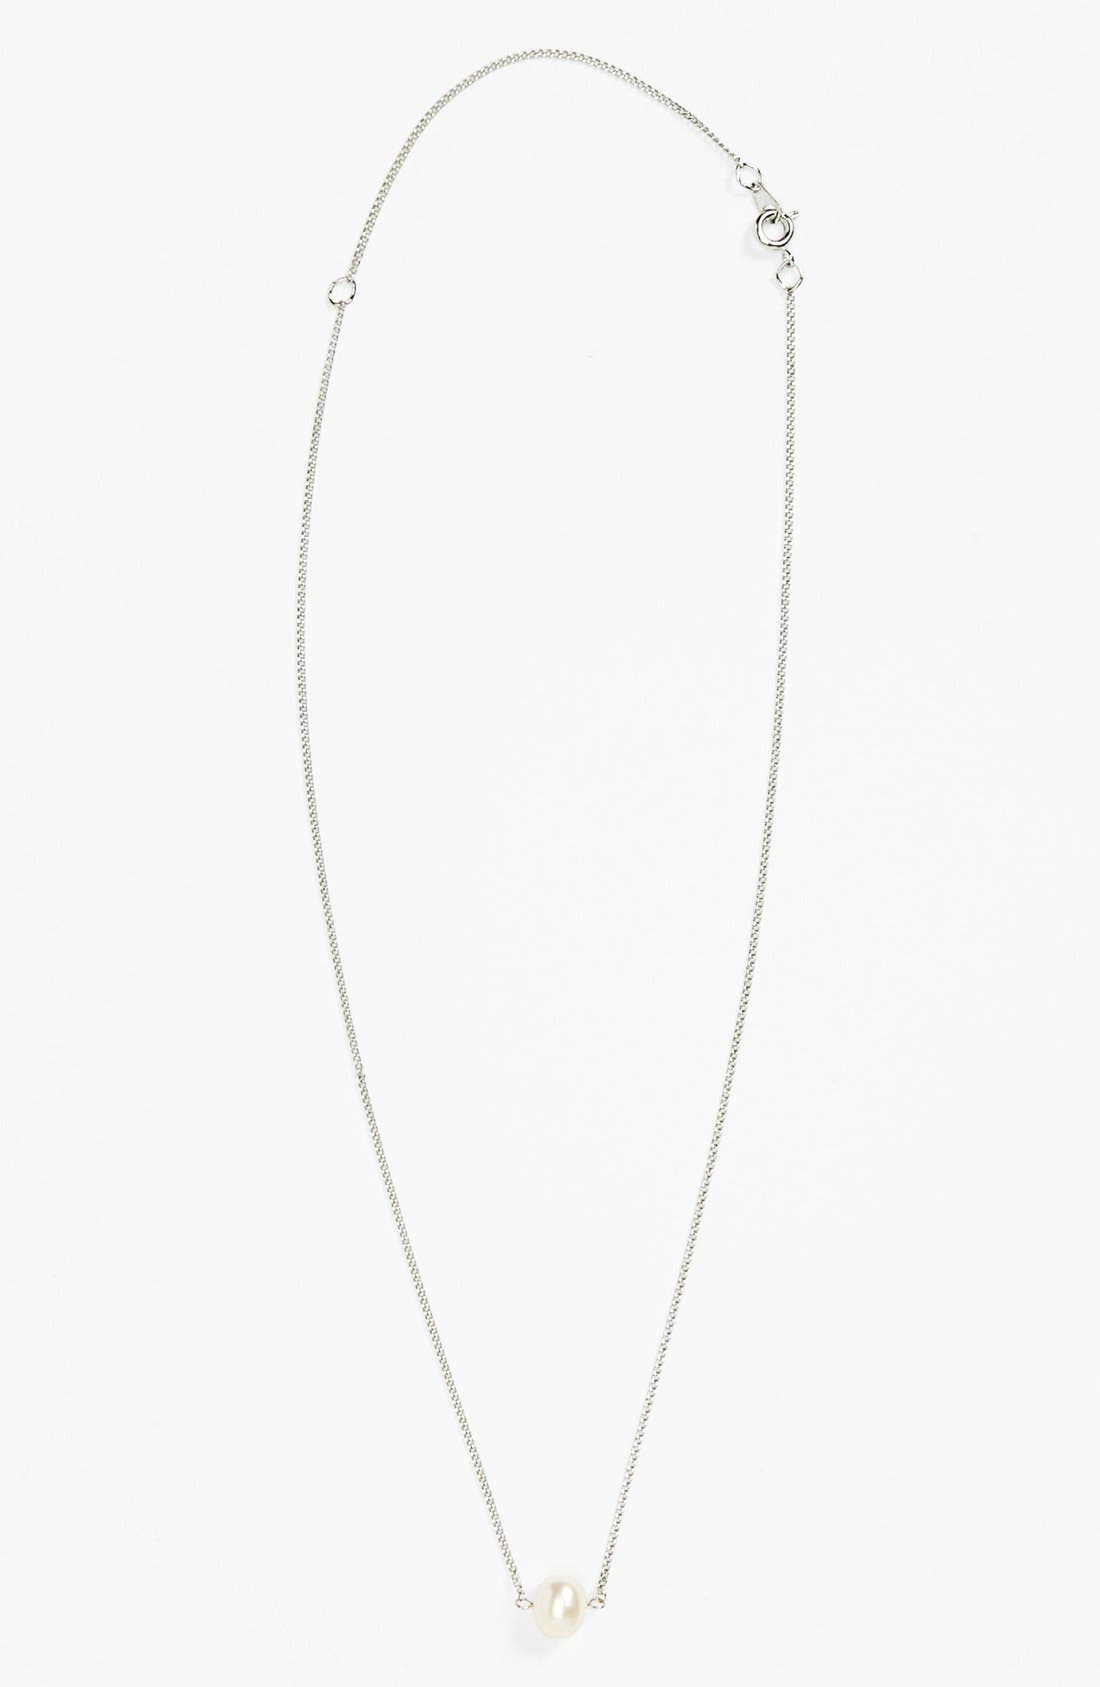 Alternate Image 1 Selected - Carole Single Faux Pearl Necklace (Juniors) (Online Only)